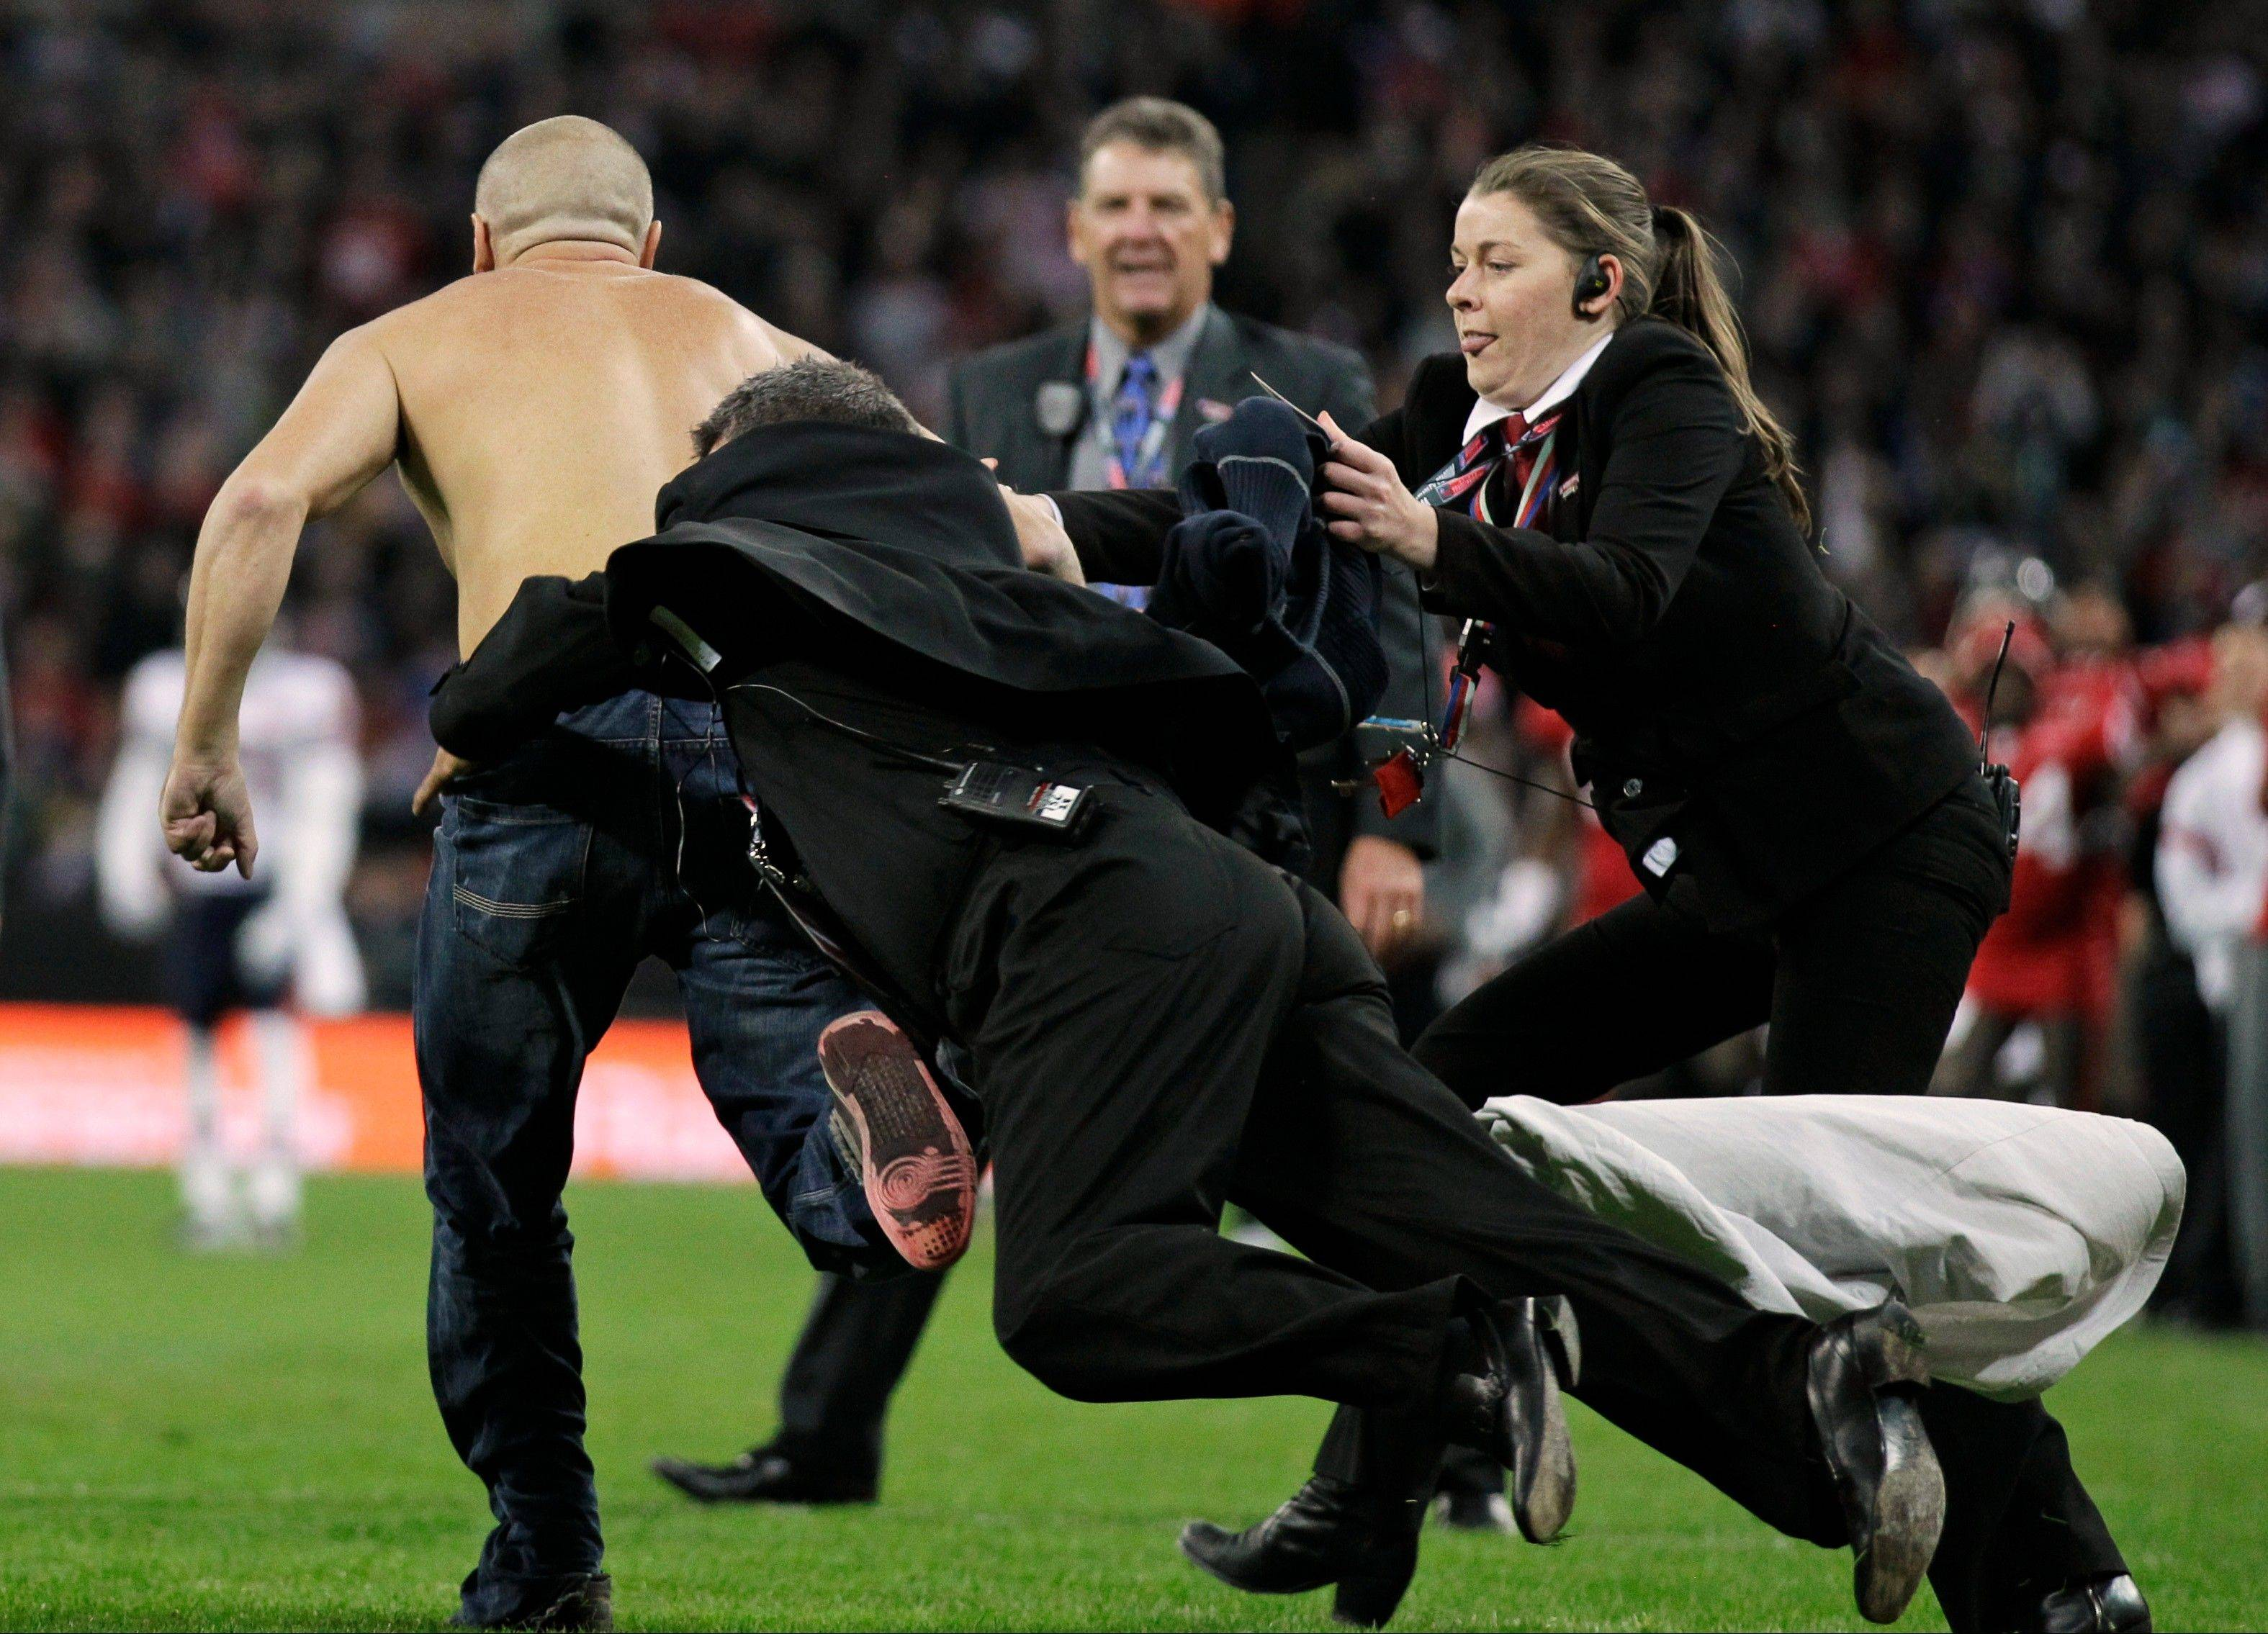 Security officers tackles a fan as he runs on to the field during the second half of an NFL football game between the Tampa Bay Buccaneers and Chicago Bears at Wembley Stadium in London.